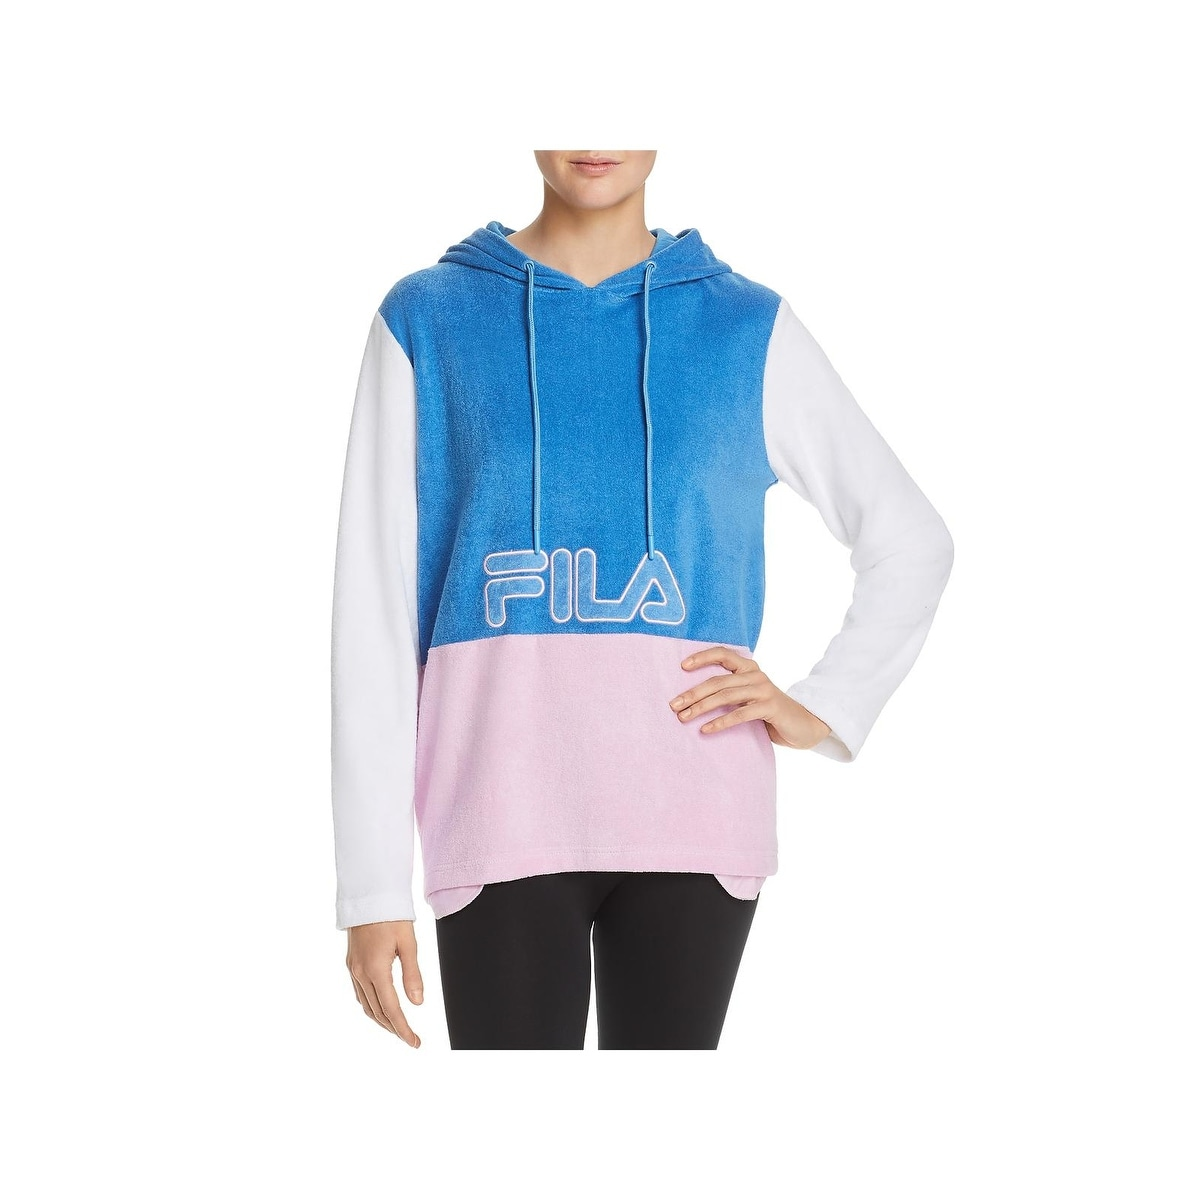 4585090a Fila Athletic Clothing | Find Great Women's Sport Clothing Deals ...